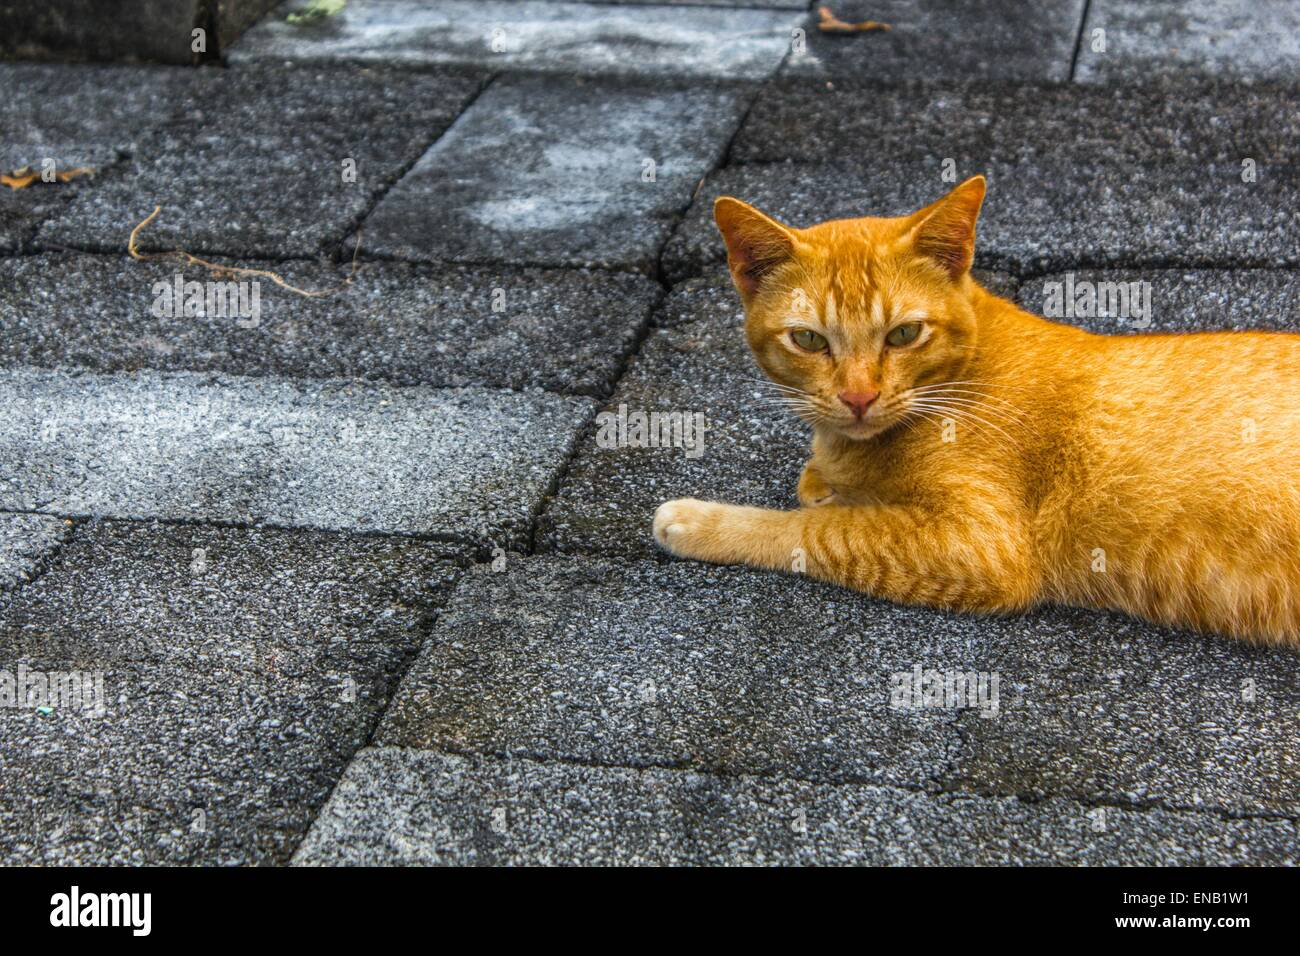 Ginger tabby cat laying down on stone outside - Stock Image